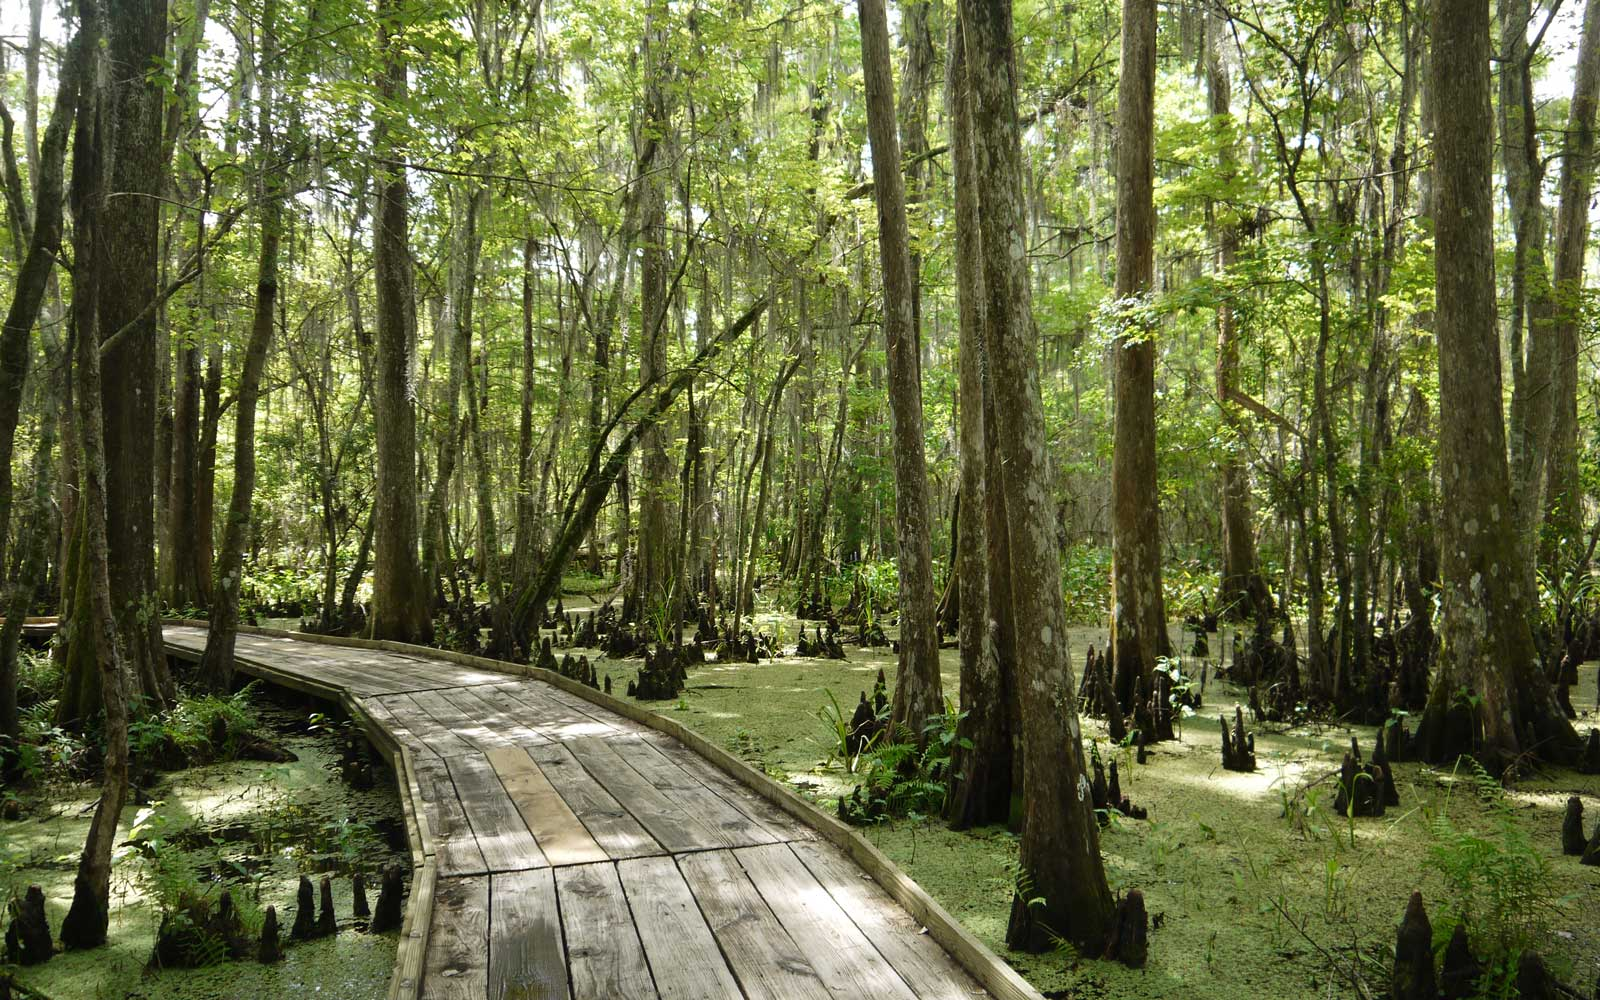 Explore everything from Cajun cooking to encounters with alligators and turtles at the Jean Lafitte National Historical Park and Preserve.